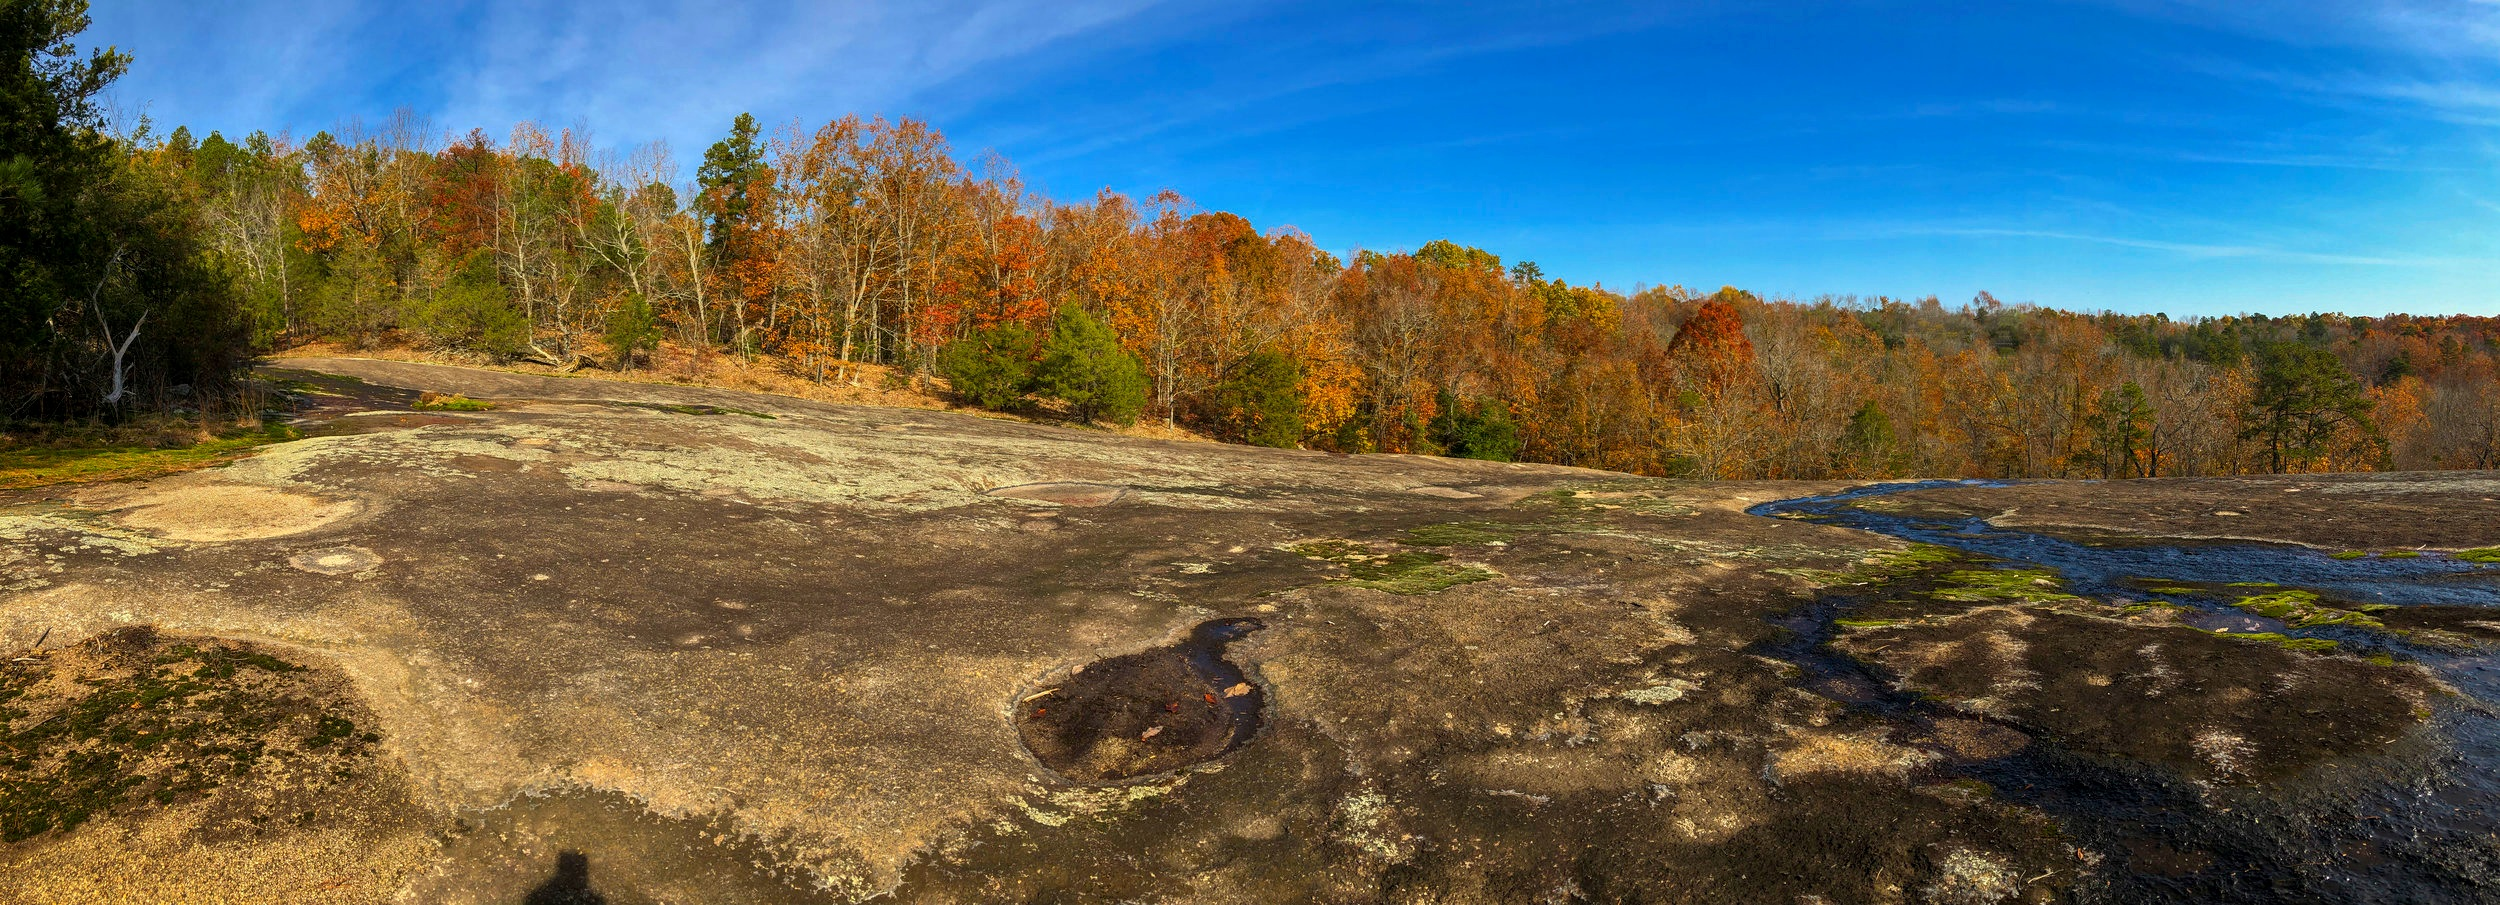 The lichen-covered rock and water-filled depressions make for a unique setting atop the SCDNR's Forty Acre Rock .